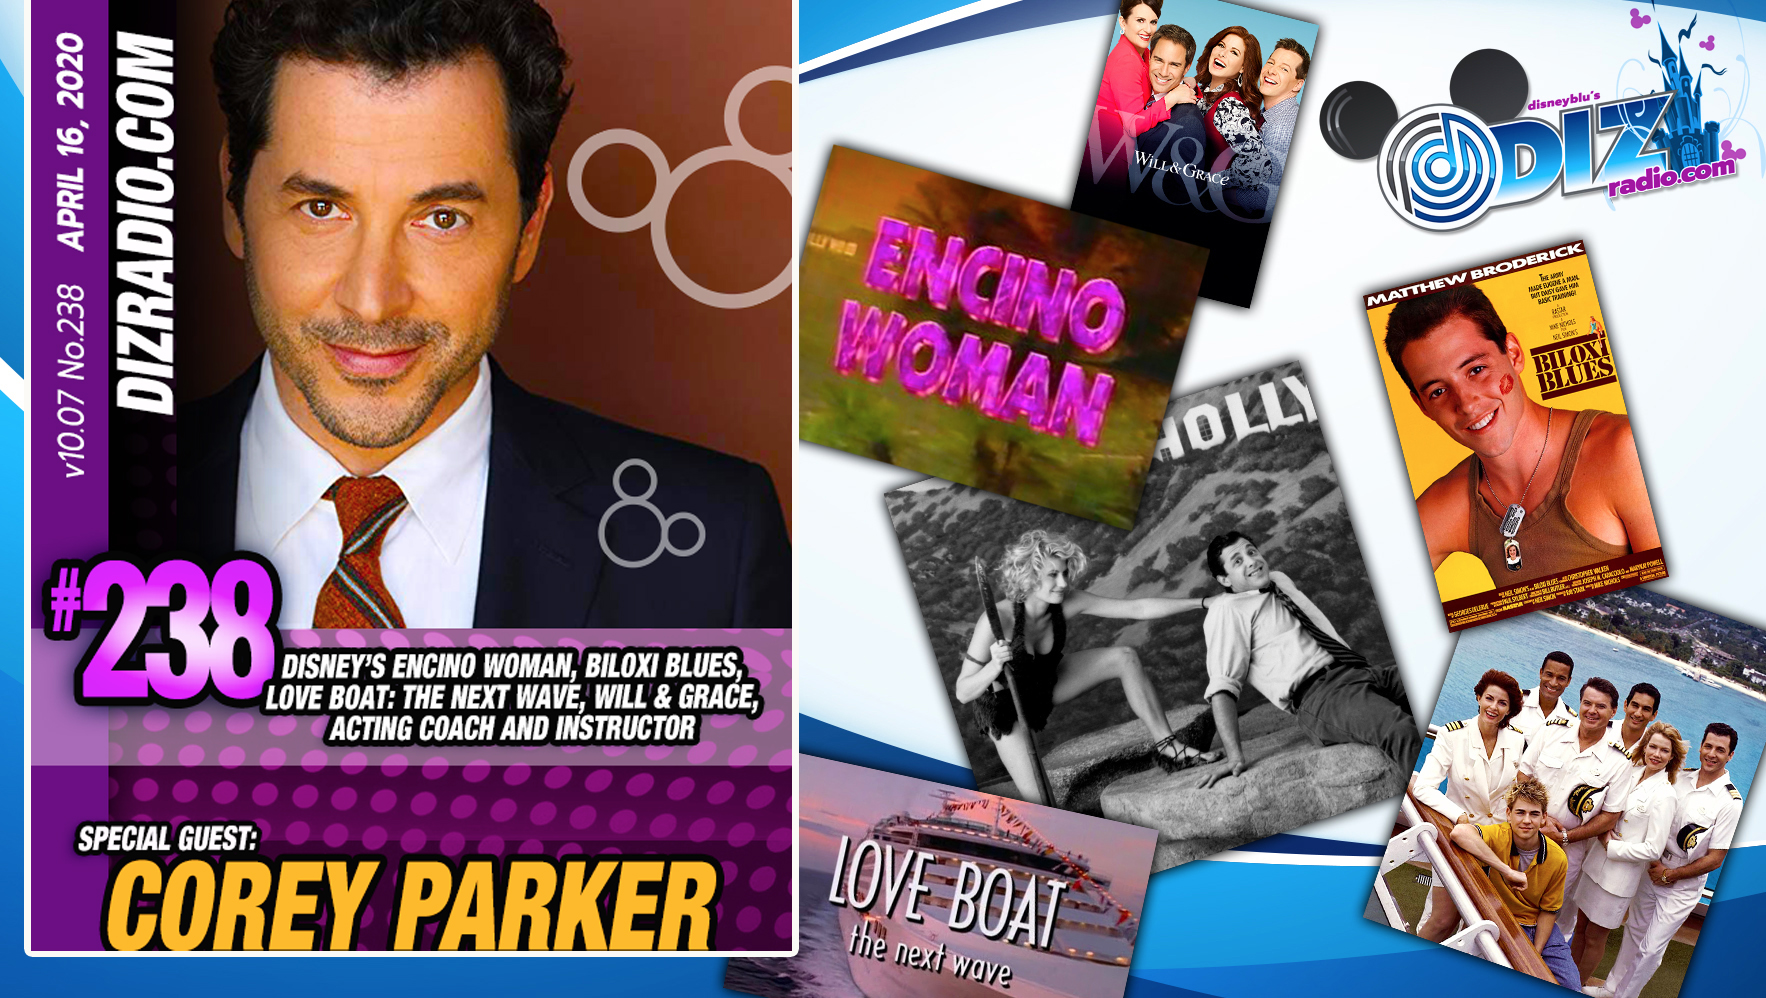 DisneyBlu's DizRadio Disney on Demand Podcast Show #238 w/ COREY PARKER (Disney's Encino Woman, Biloxi Blues, Love Boat The Next Wave, Still the Beaver, Will and Grace, Flying Blind, Acting Coach)